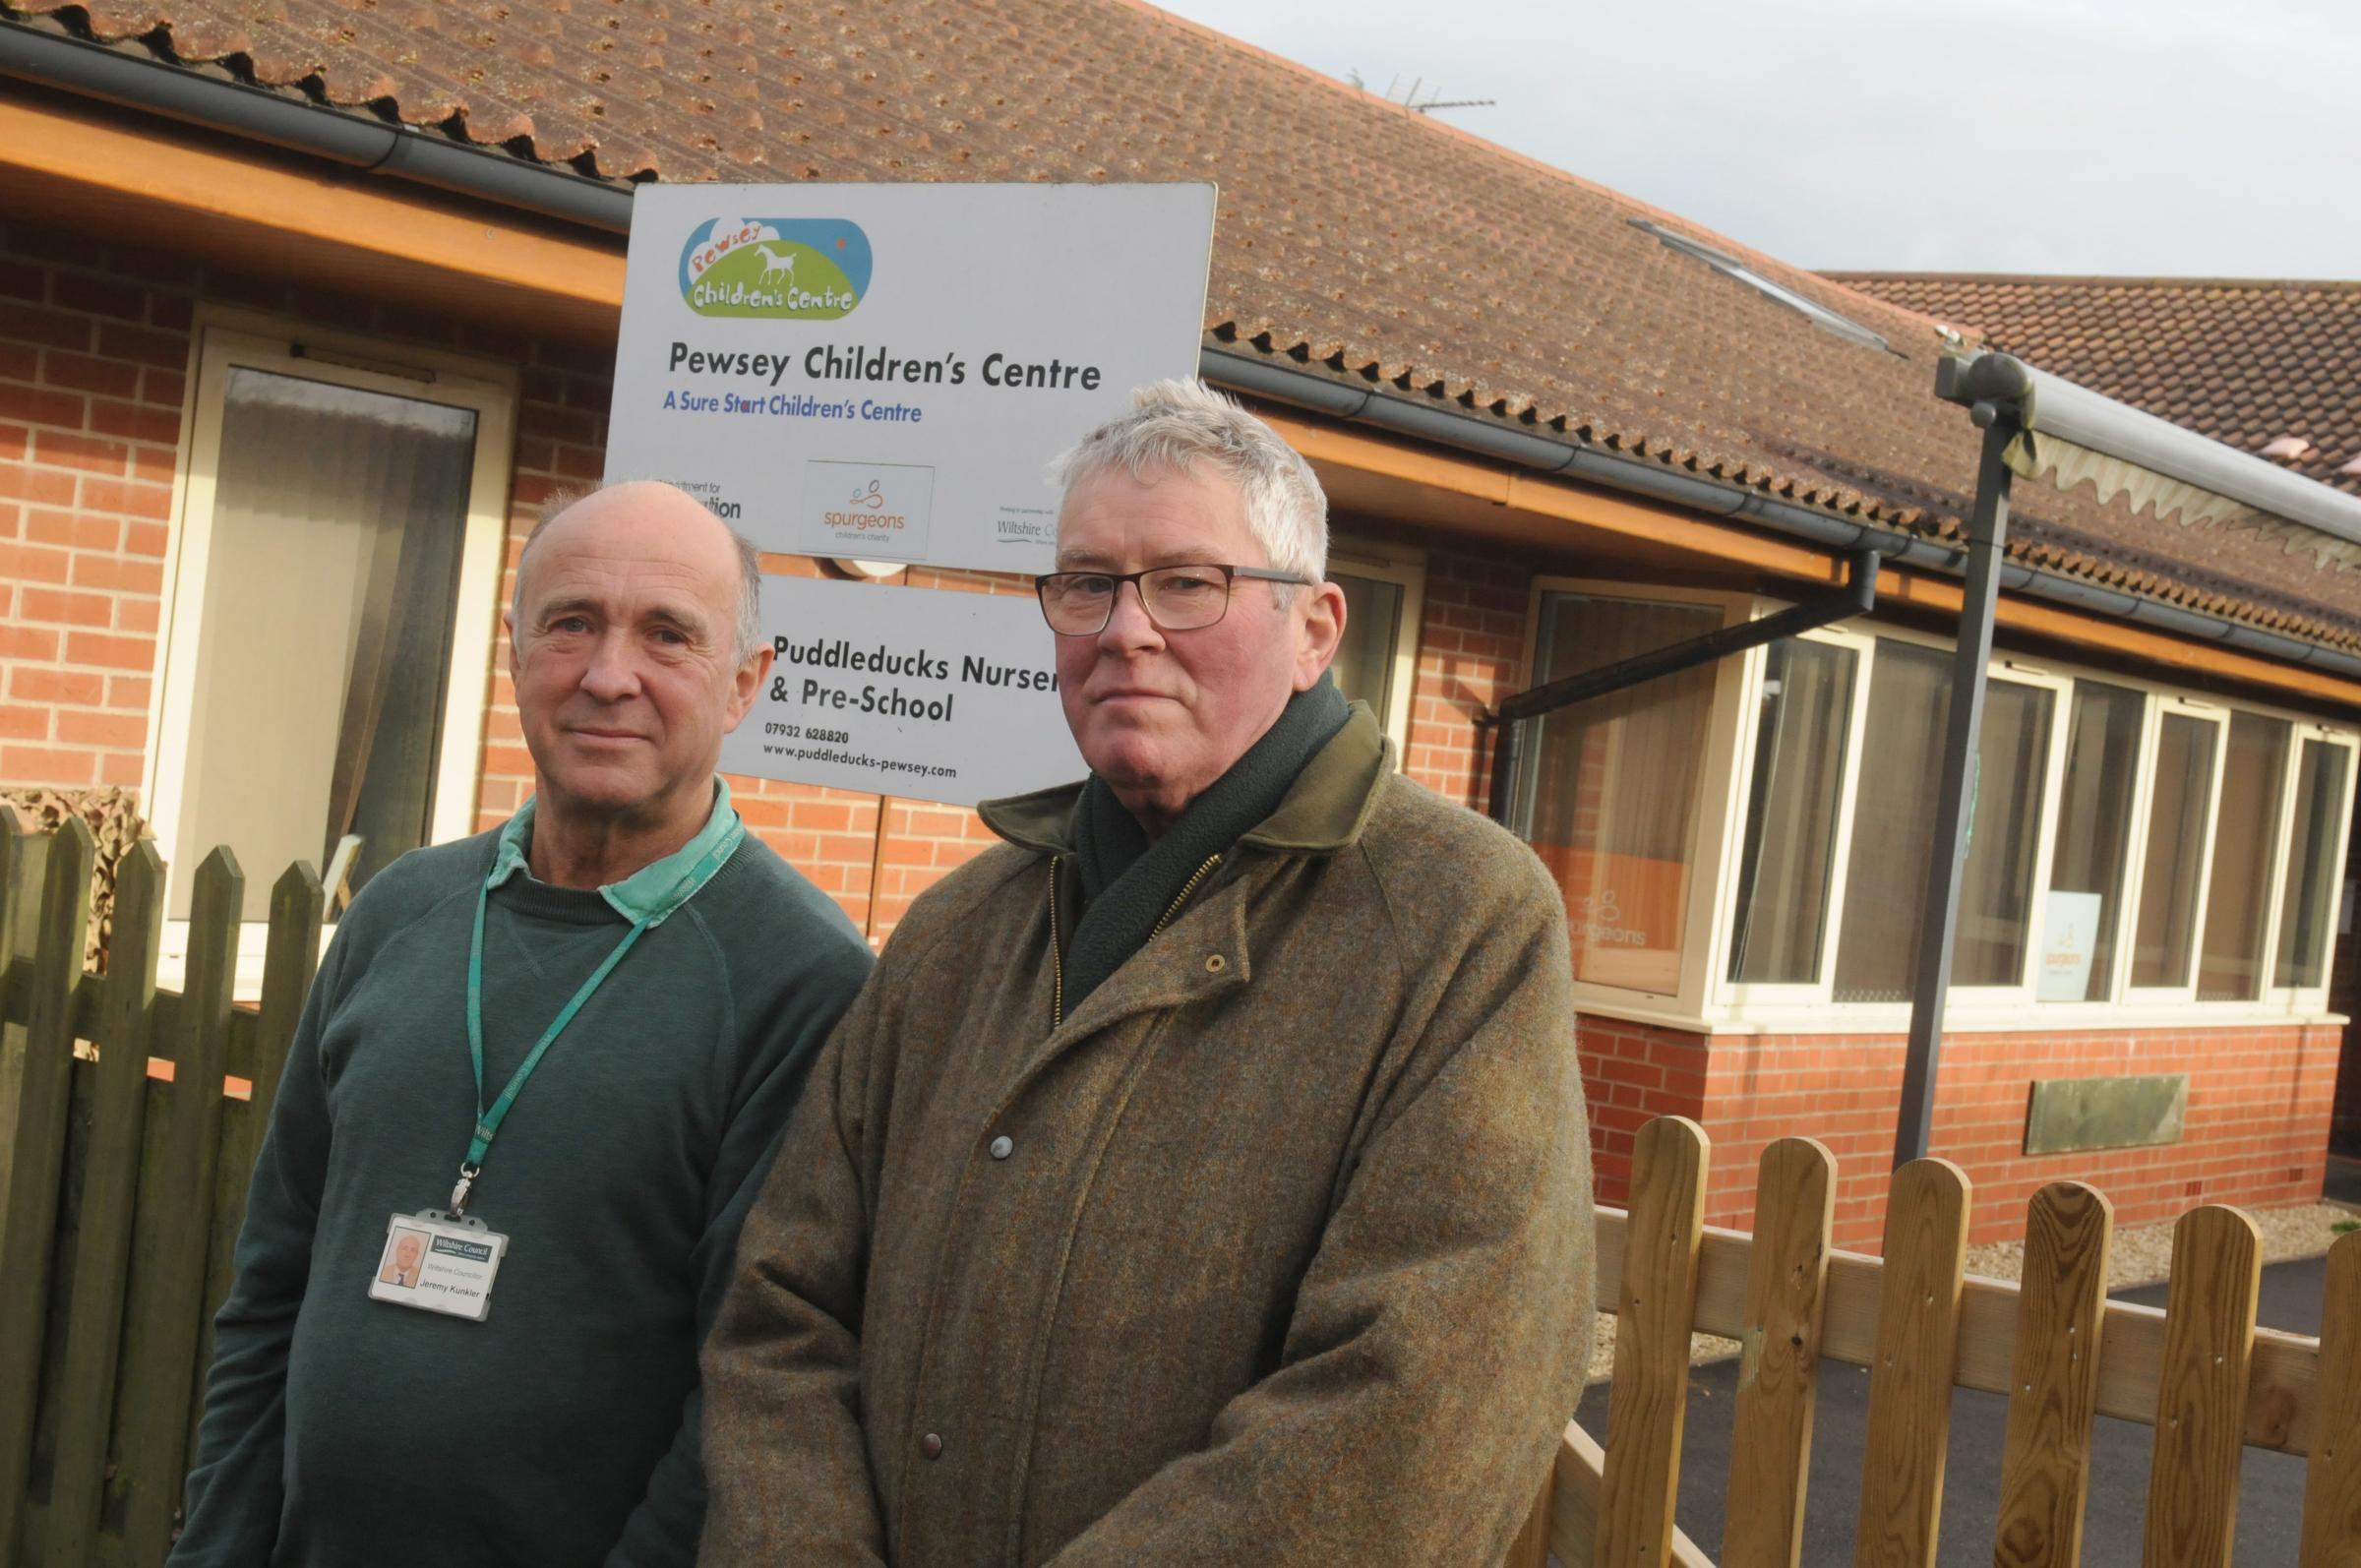 L-r Jerry Kunkler and Curly Haskell outside Pewsey Children's Centre.  Photo: Si3bhan Boyle SMB2698/3.